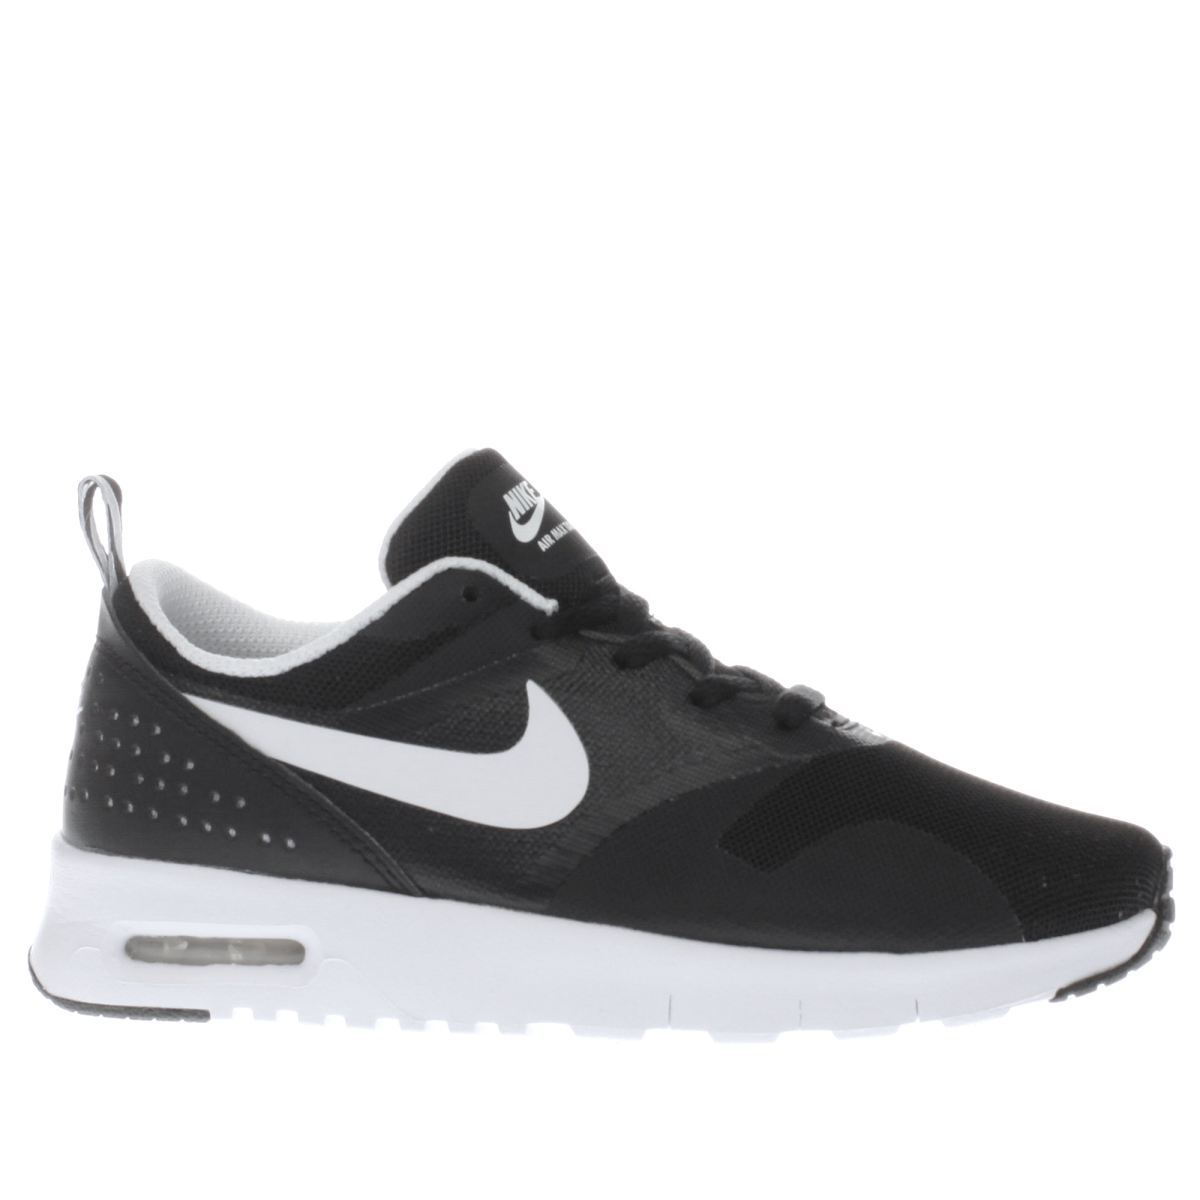 nike black & white air max tavas Junior Trainers